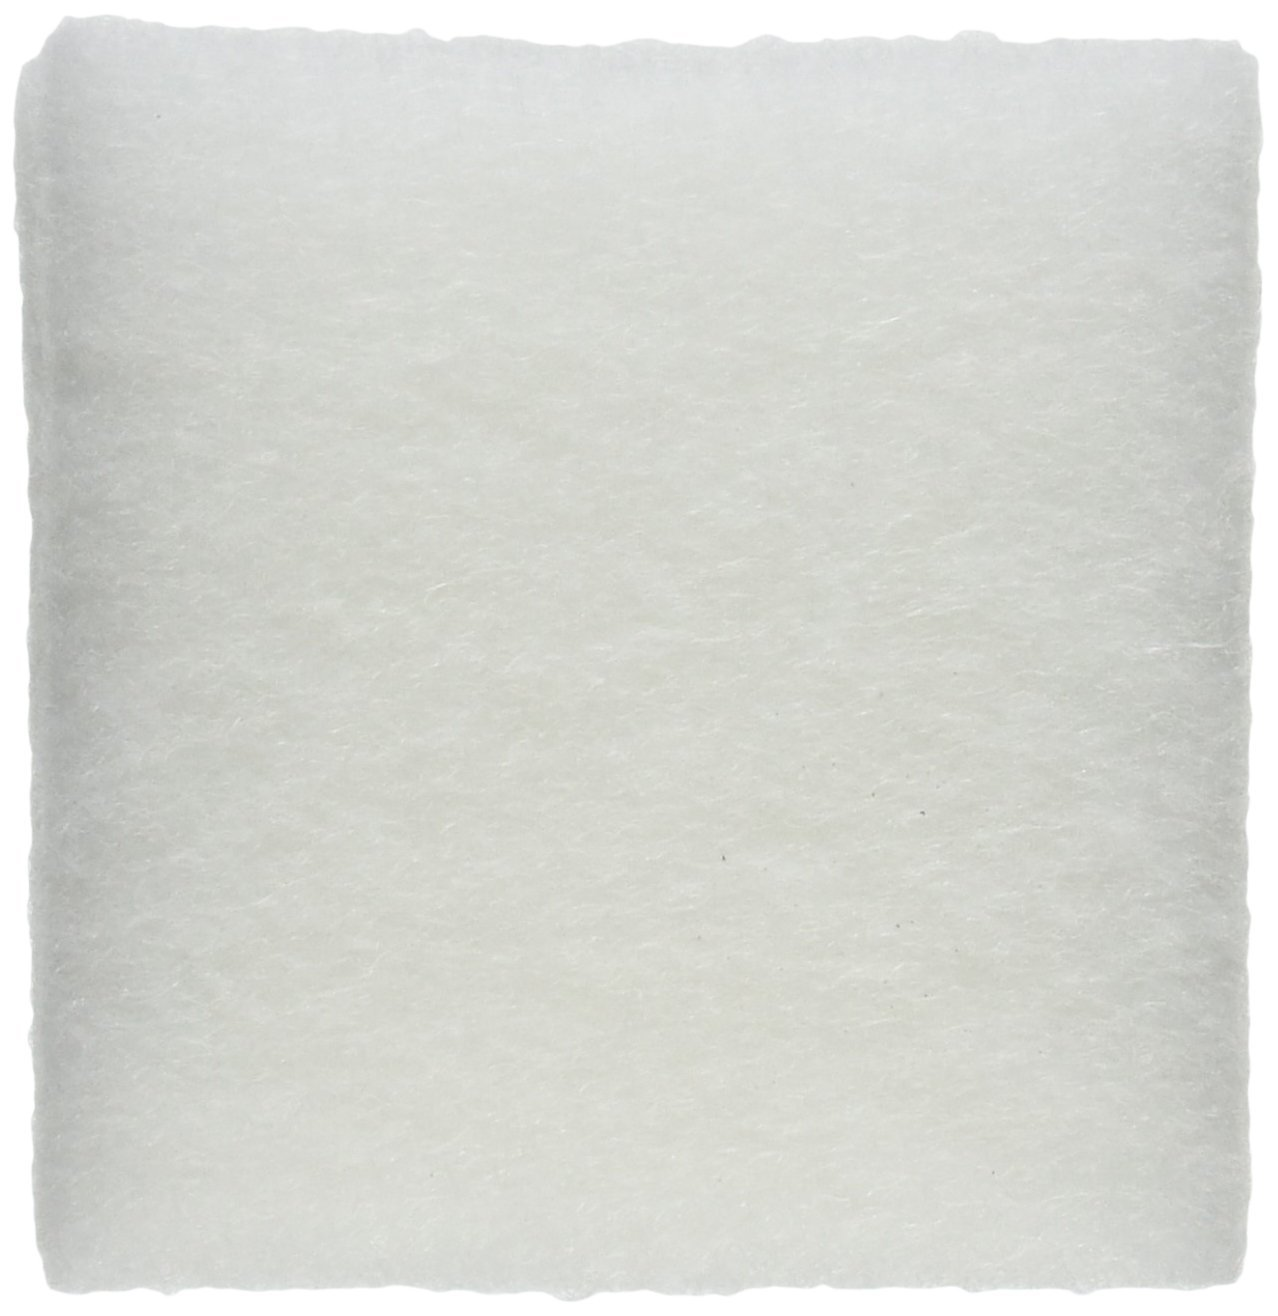 Red Sea Fish Pharm ARE40262 Max Fine Filter Pad for Aquarium Filters by Red Sea Fish Pharm Ltd. B00BUFW9NA